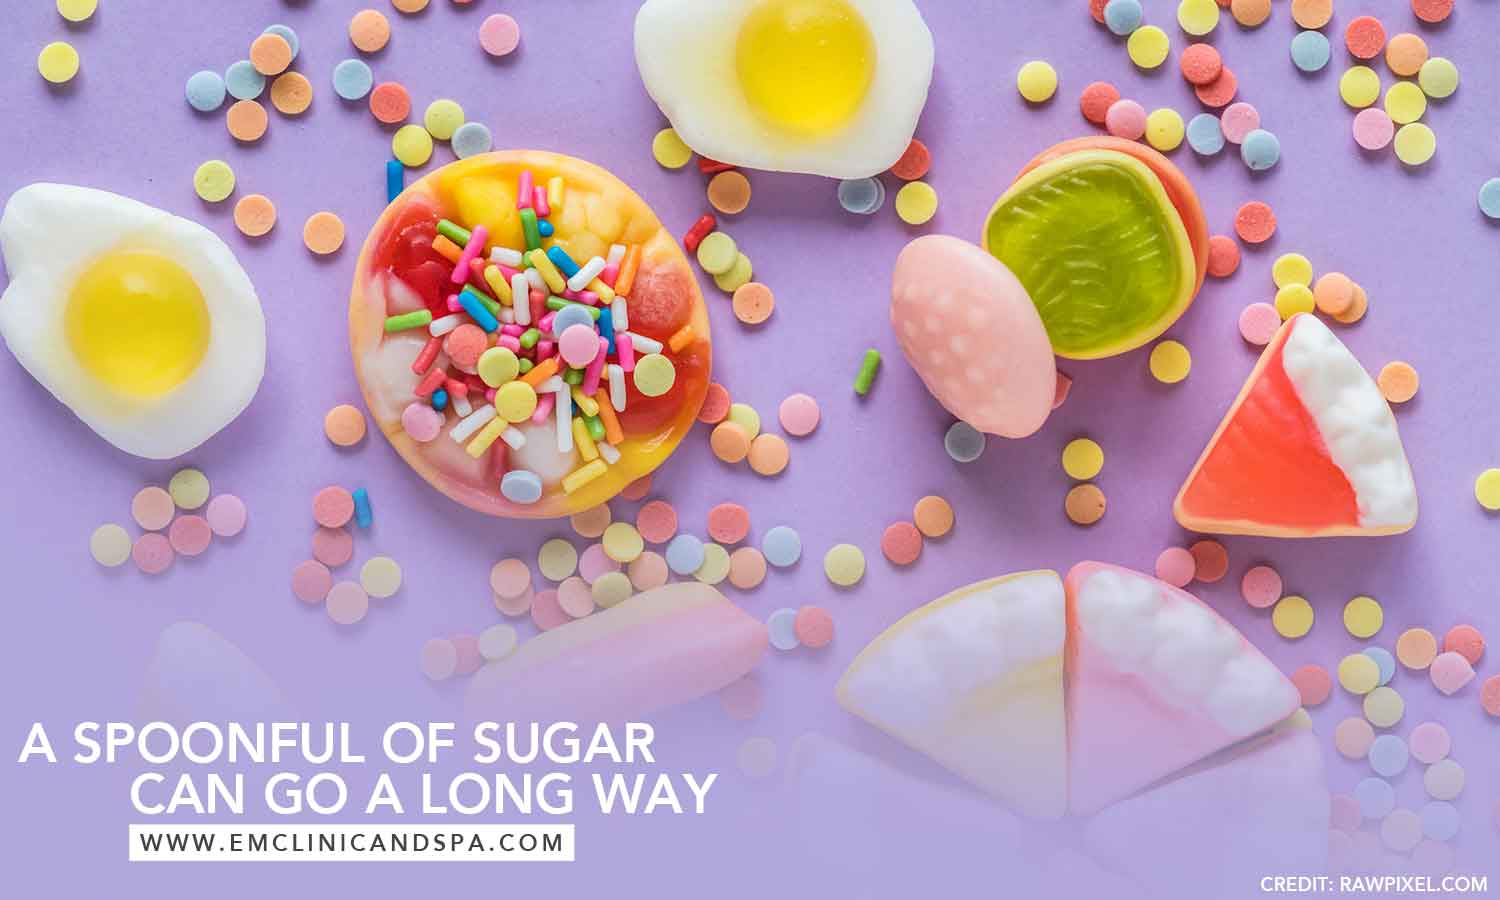 spoonful of sugar can go a long way